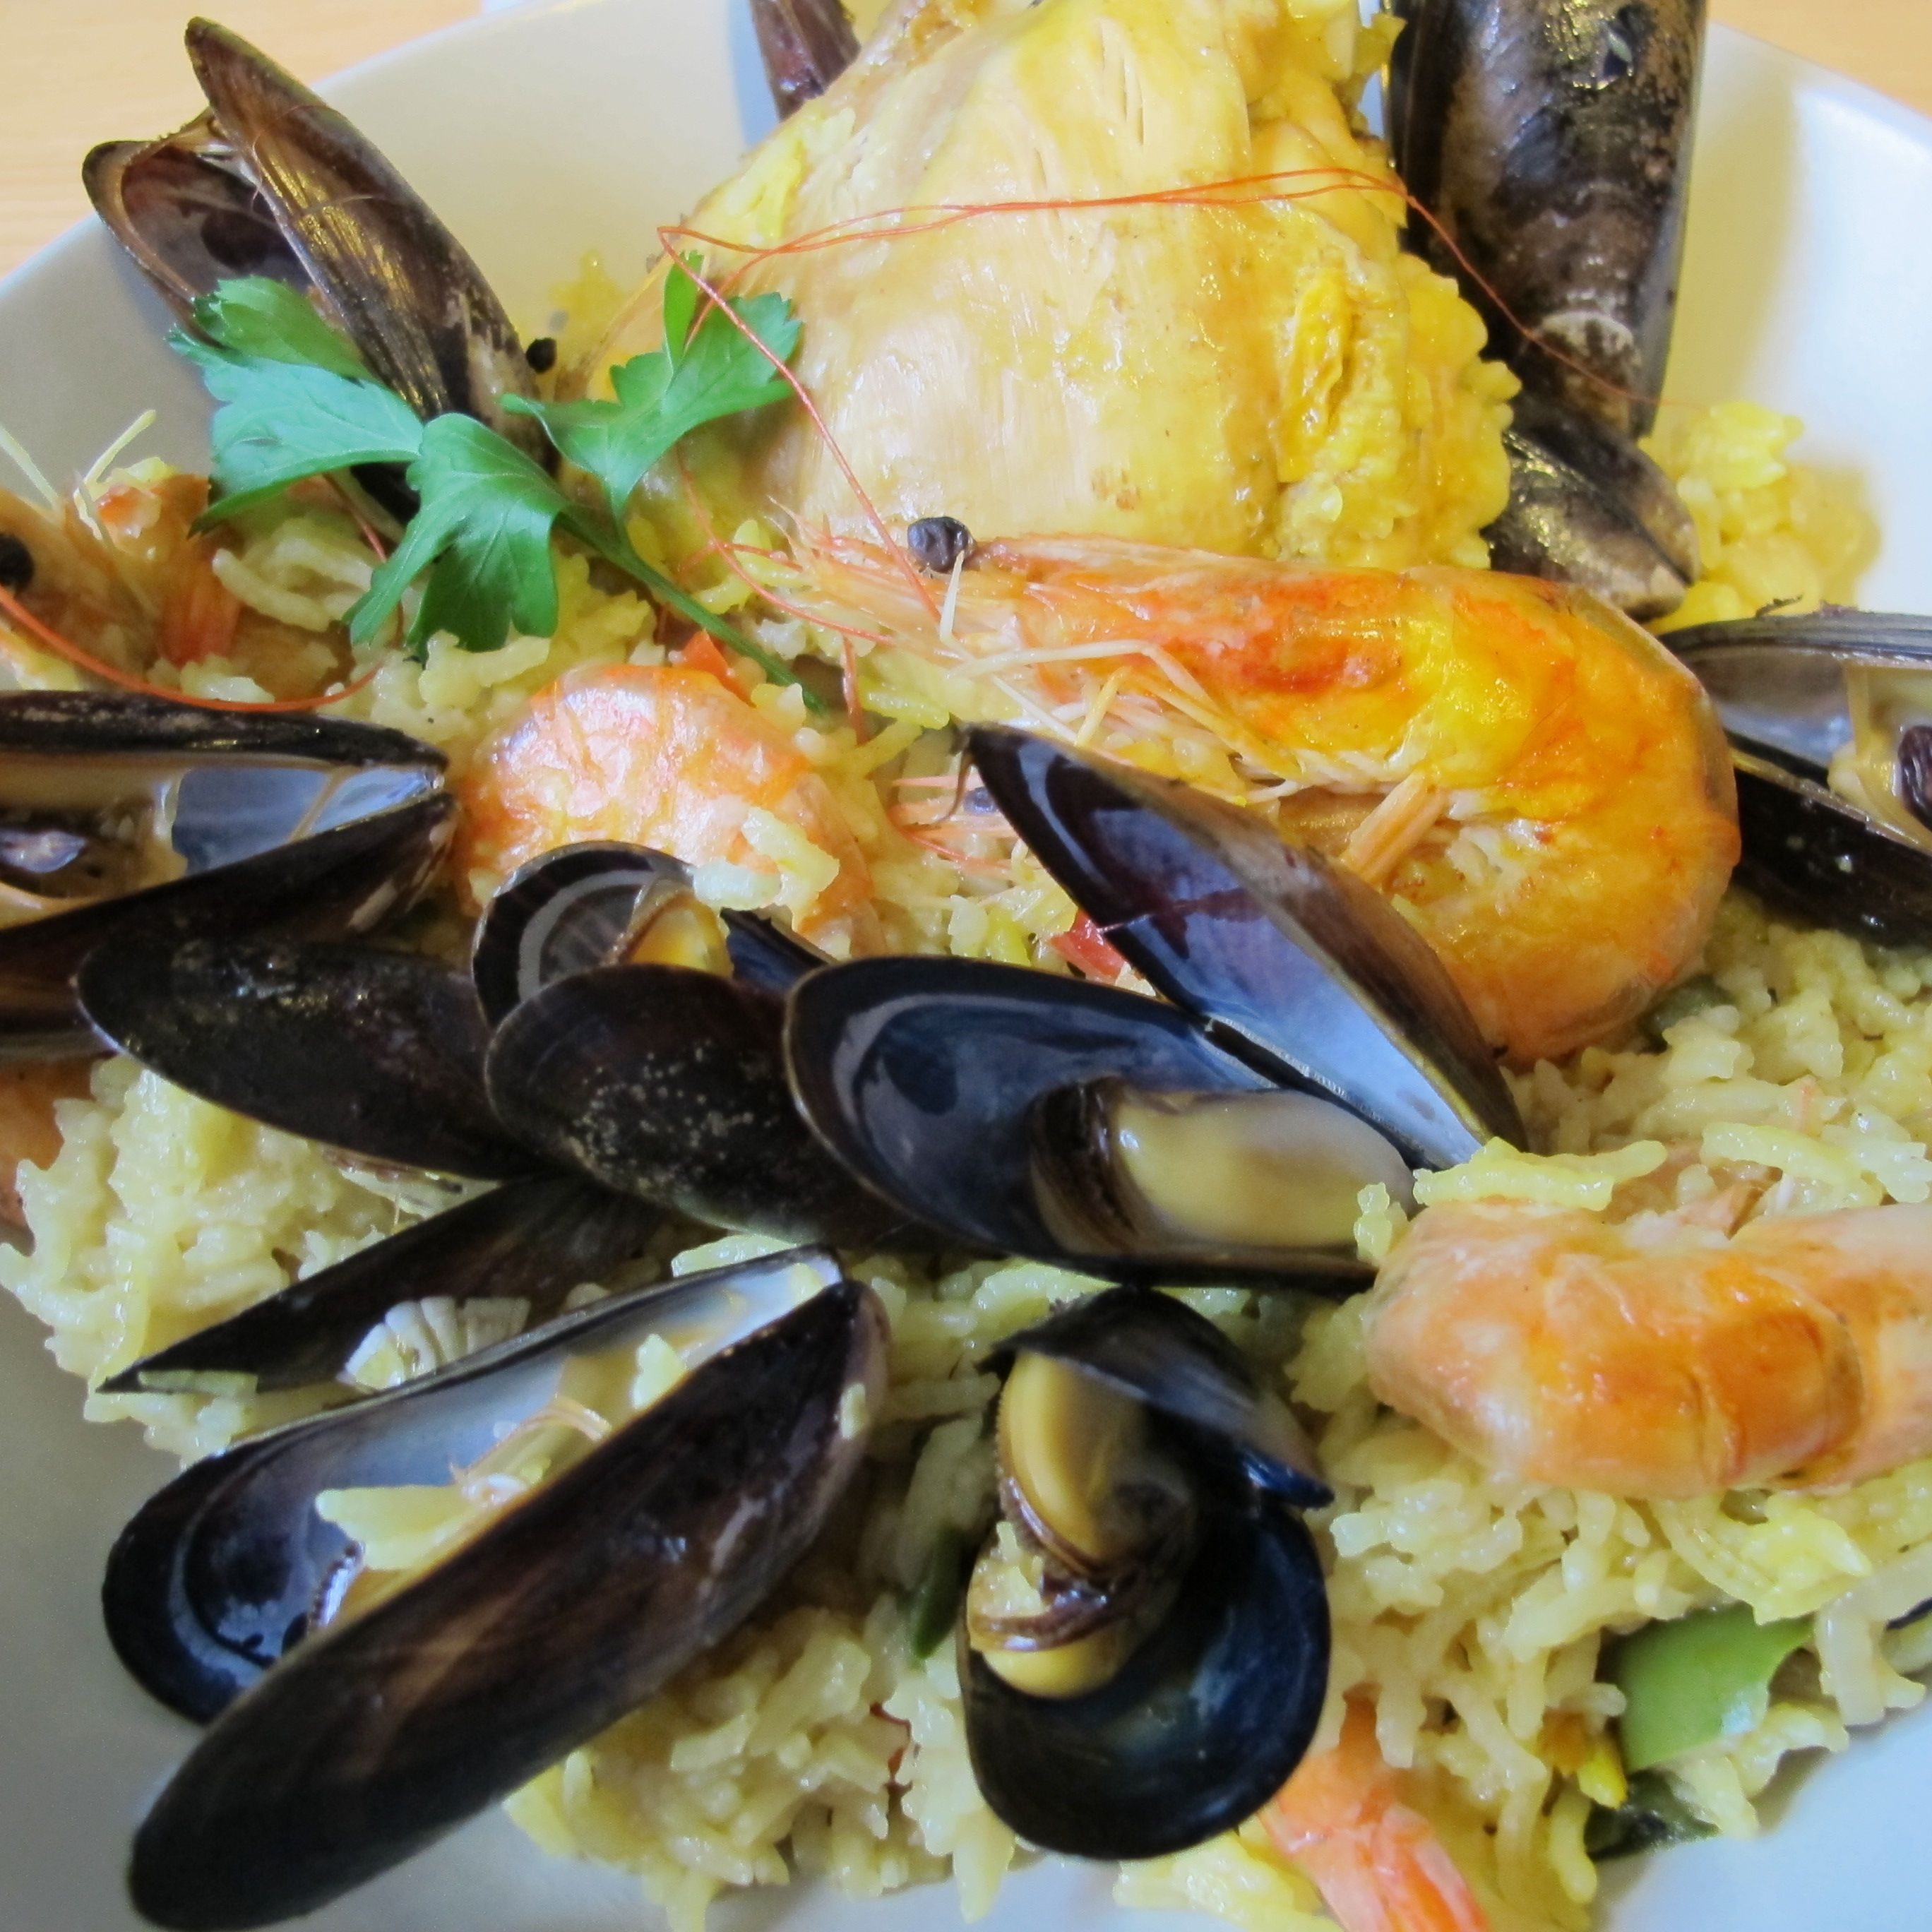 Roaster paella au four facile recettes warmcook warmcook roaster warmcook roaster - Recette paella facile ...